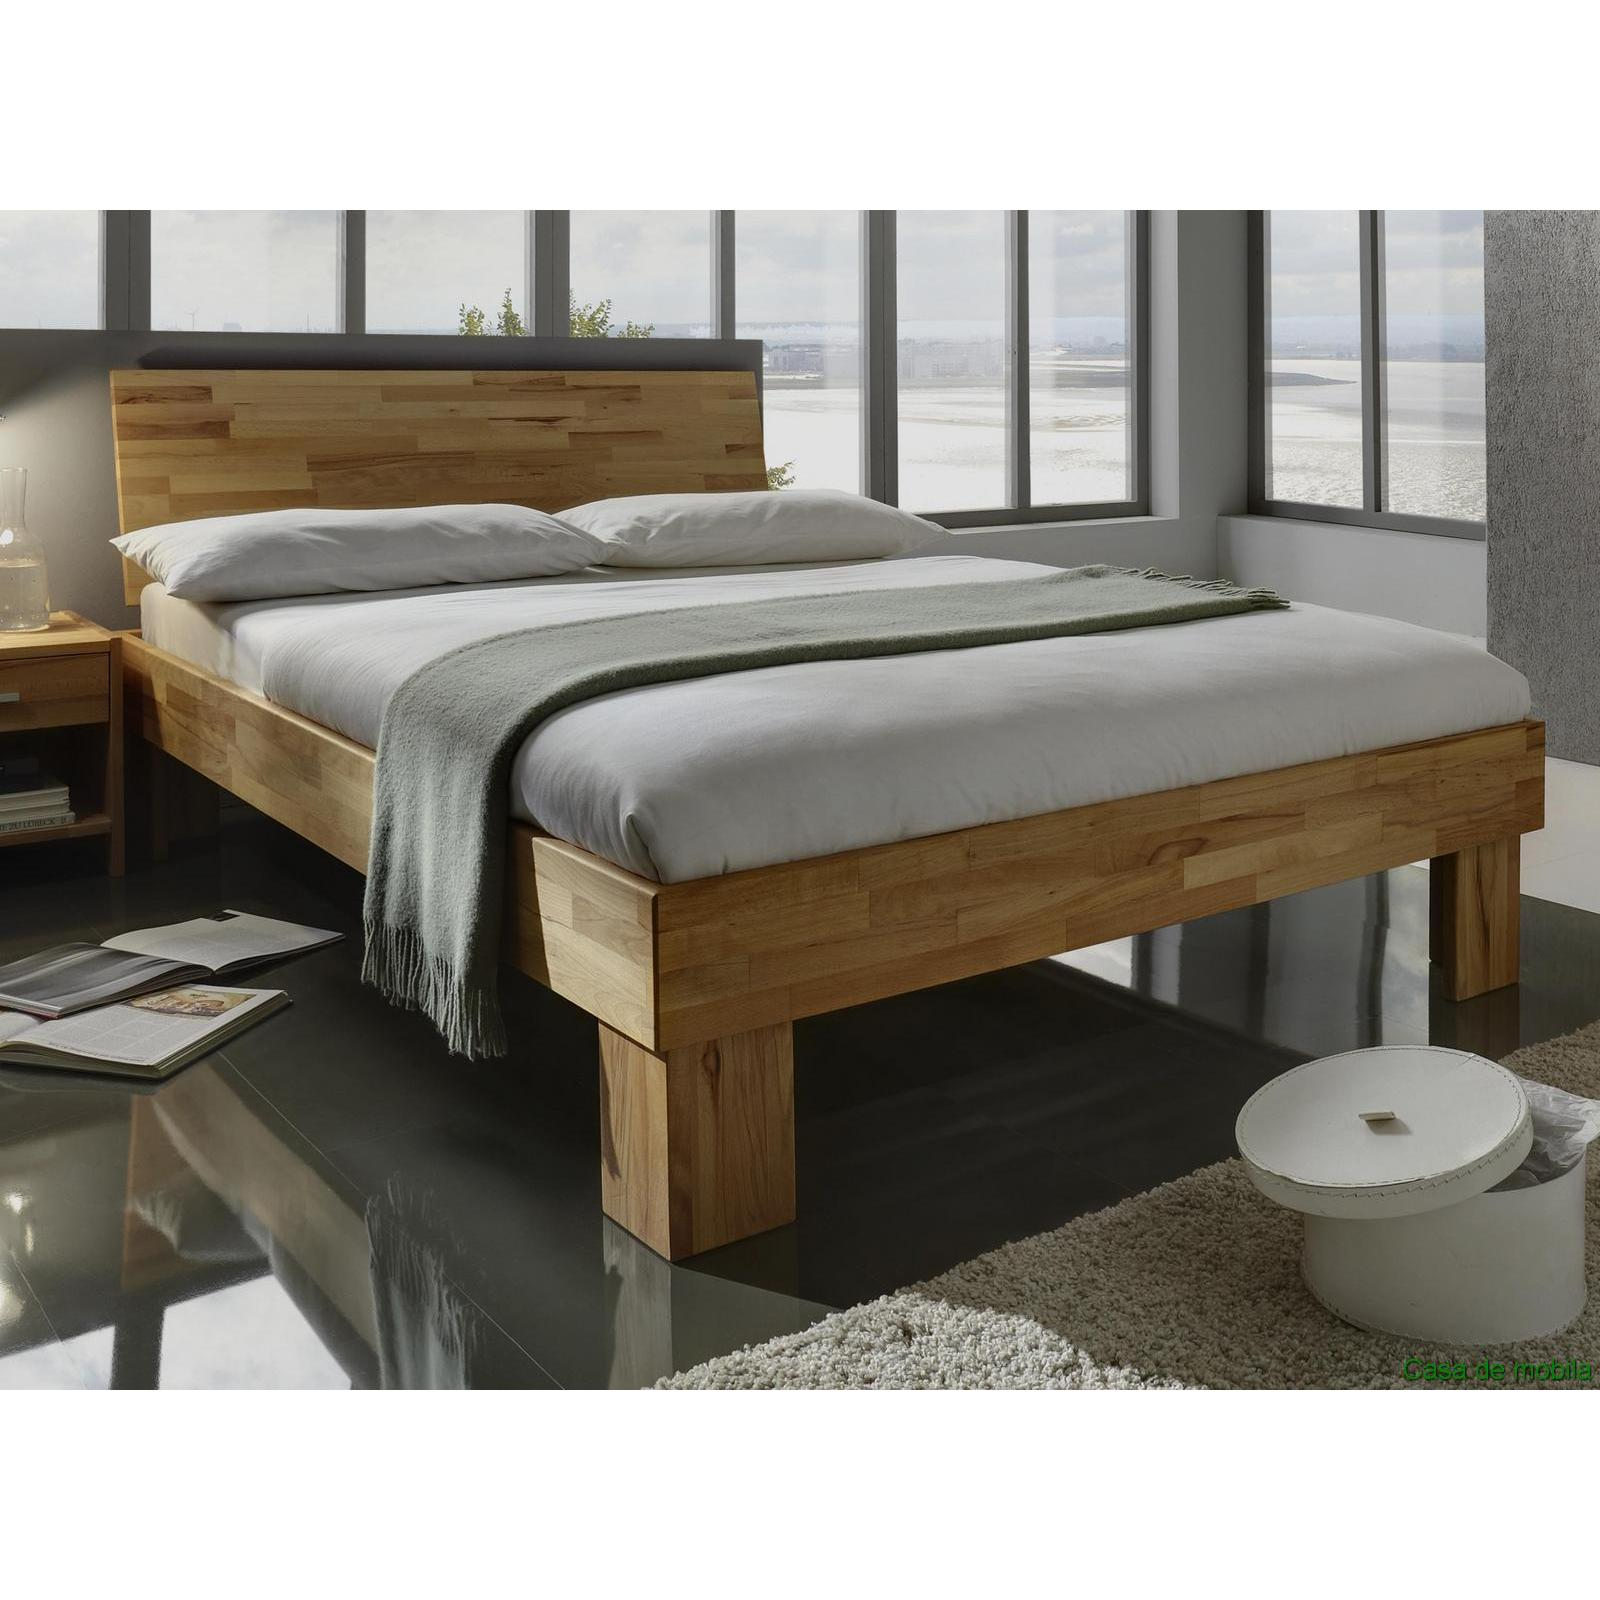 echtholz doppelbett kernbuche massiv ge lt gamma bett 140x200. Black Bedroom Furniture Sets. Home Design Ideas